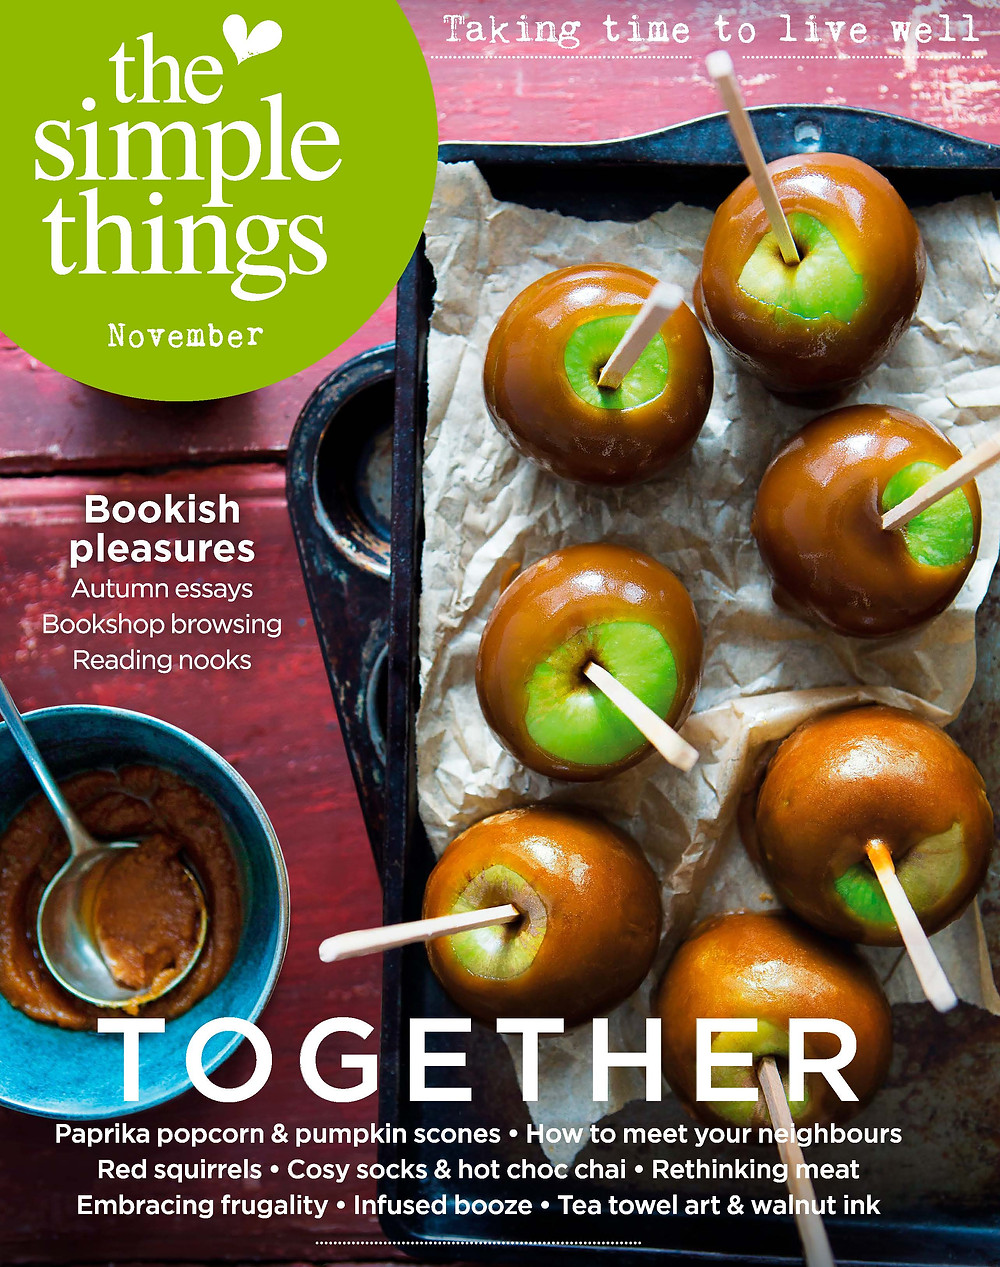 Cover of The Simple Things magazine November 2018